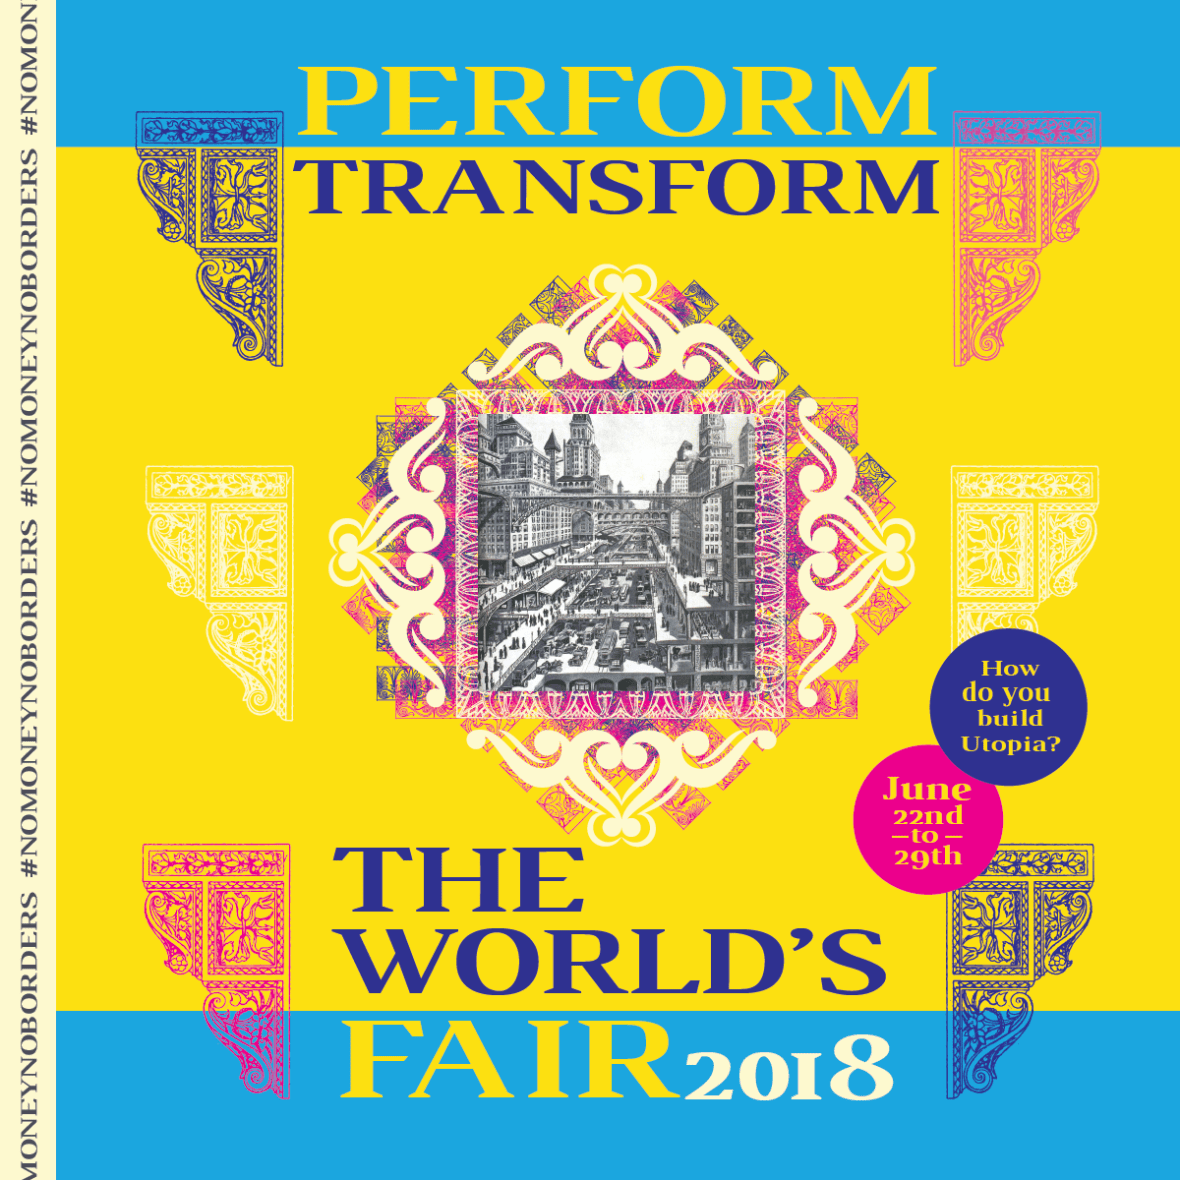 """A bright yellow and blue flyer for the World's Fair 2018 (June 22-29) that asks, """"How are you building Utopia?"""""""